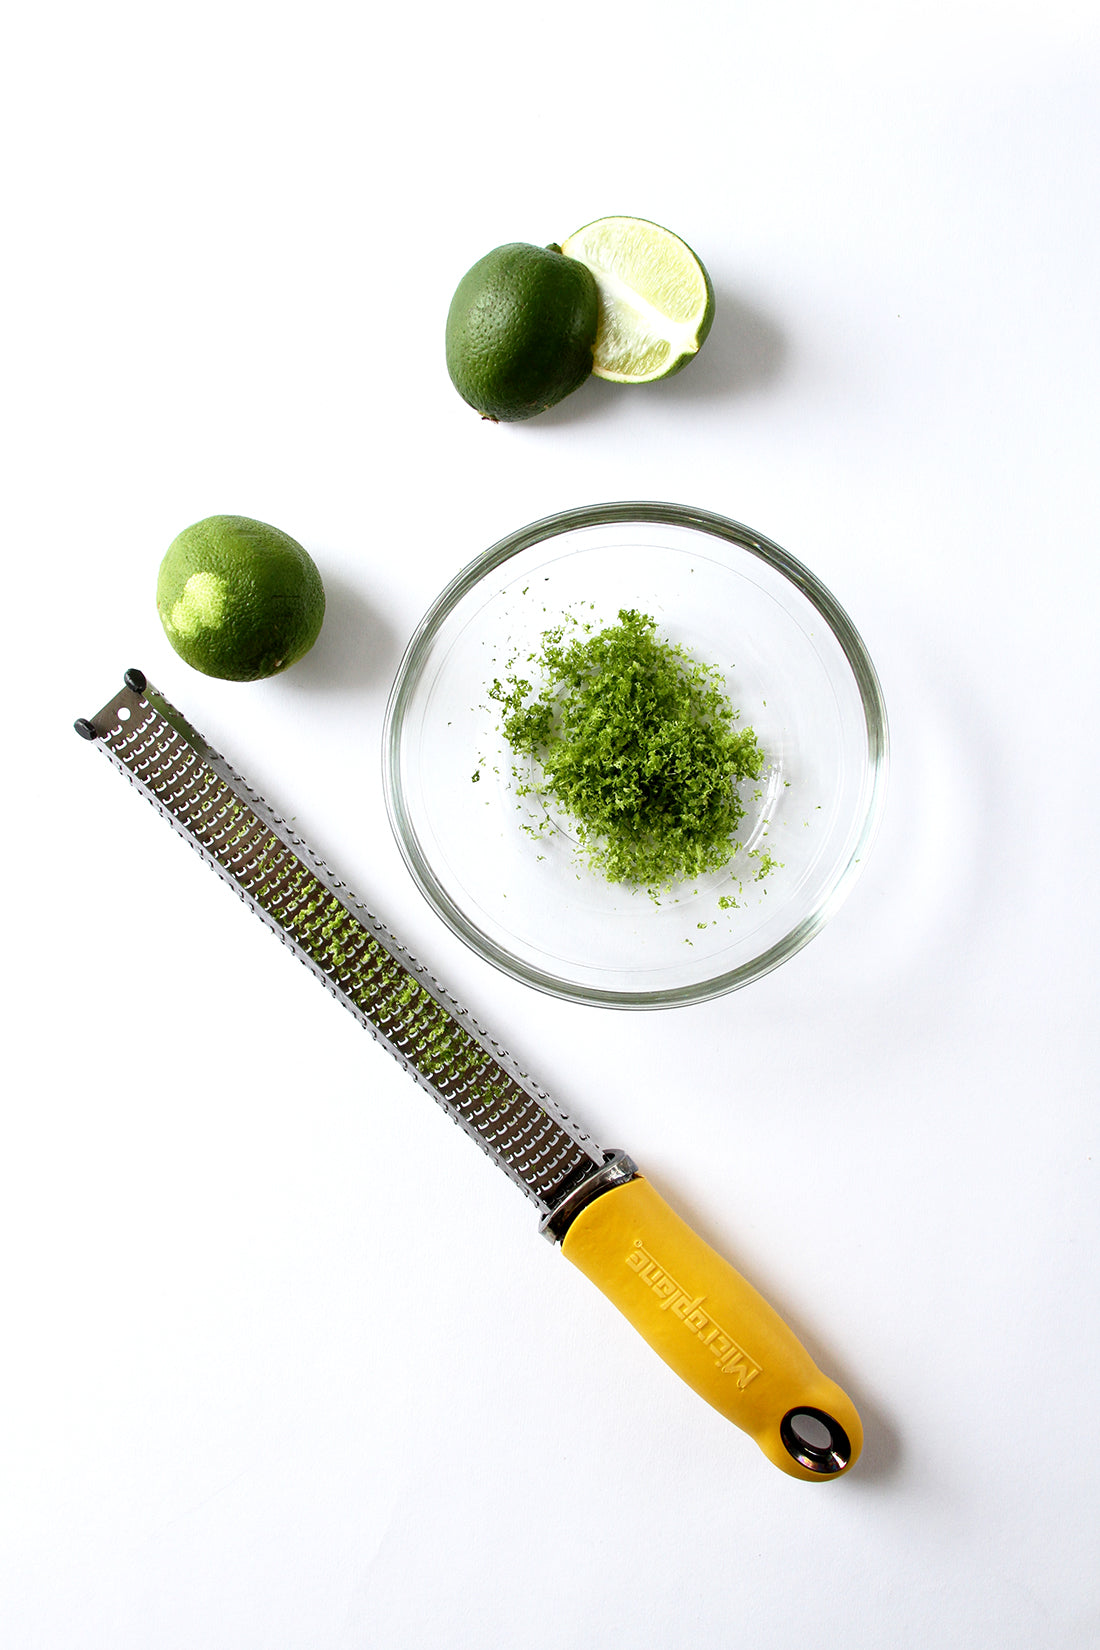 Image of lime zest in a bowl next to limes and a zester for Miss Jones Baking Co Fruit Cart Tarts recipe